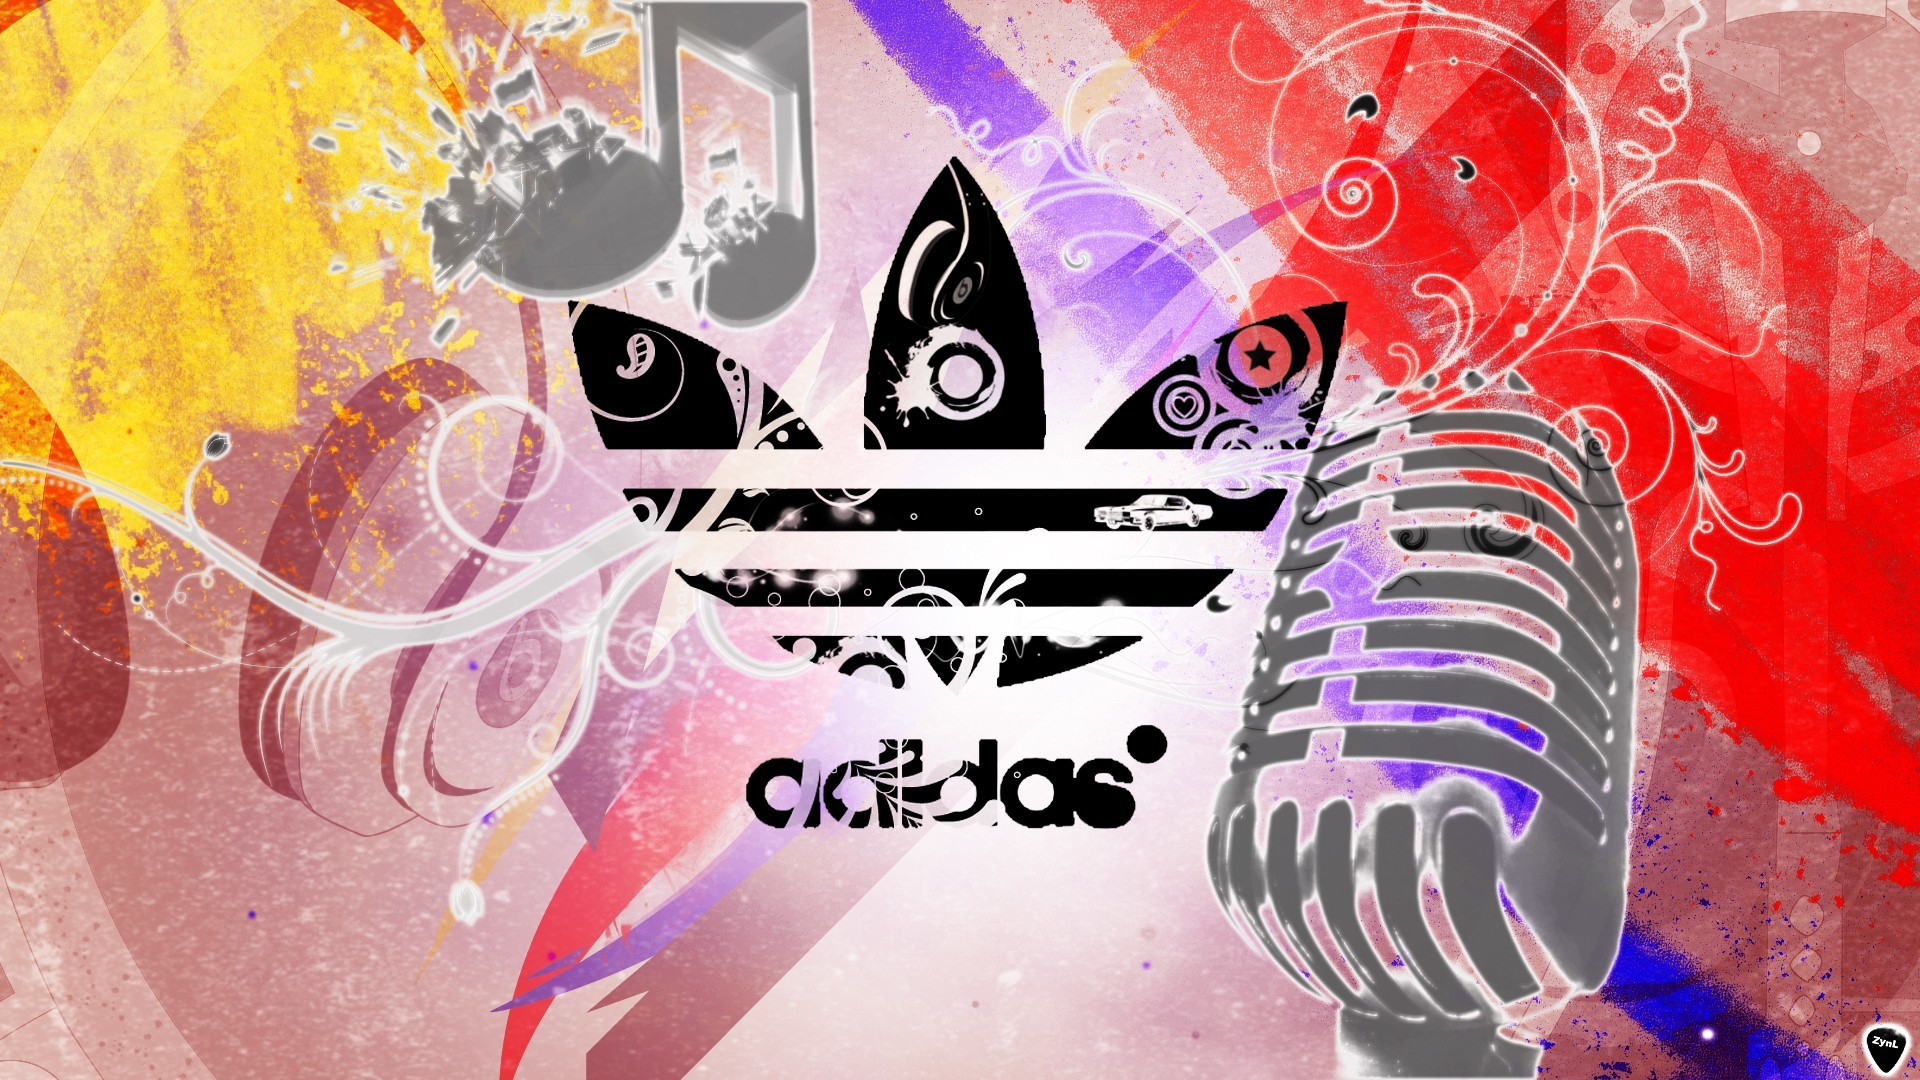 1920x1080 Collection of Adidas Wallpaper Logo on HDWallpapers Imagenes Adidas Wallpapers  Wallpapers)